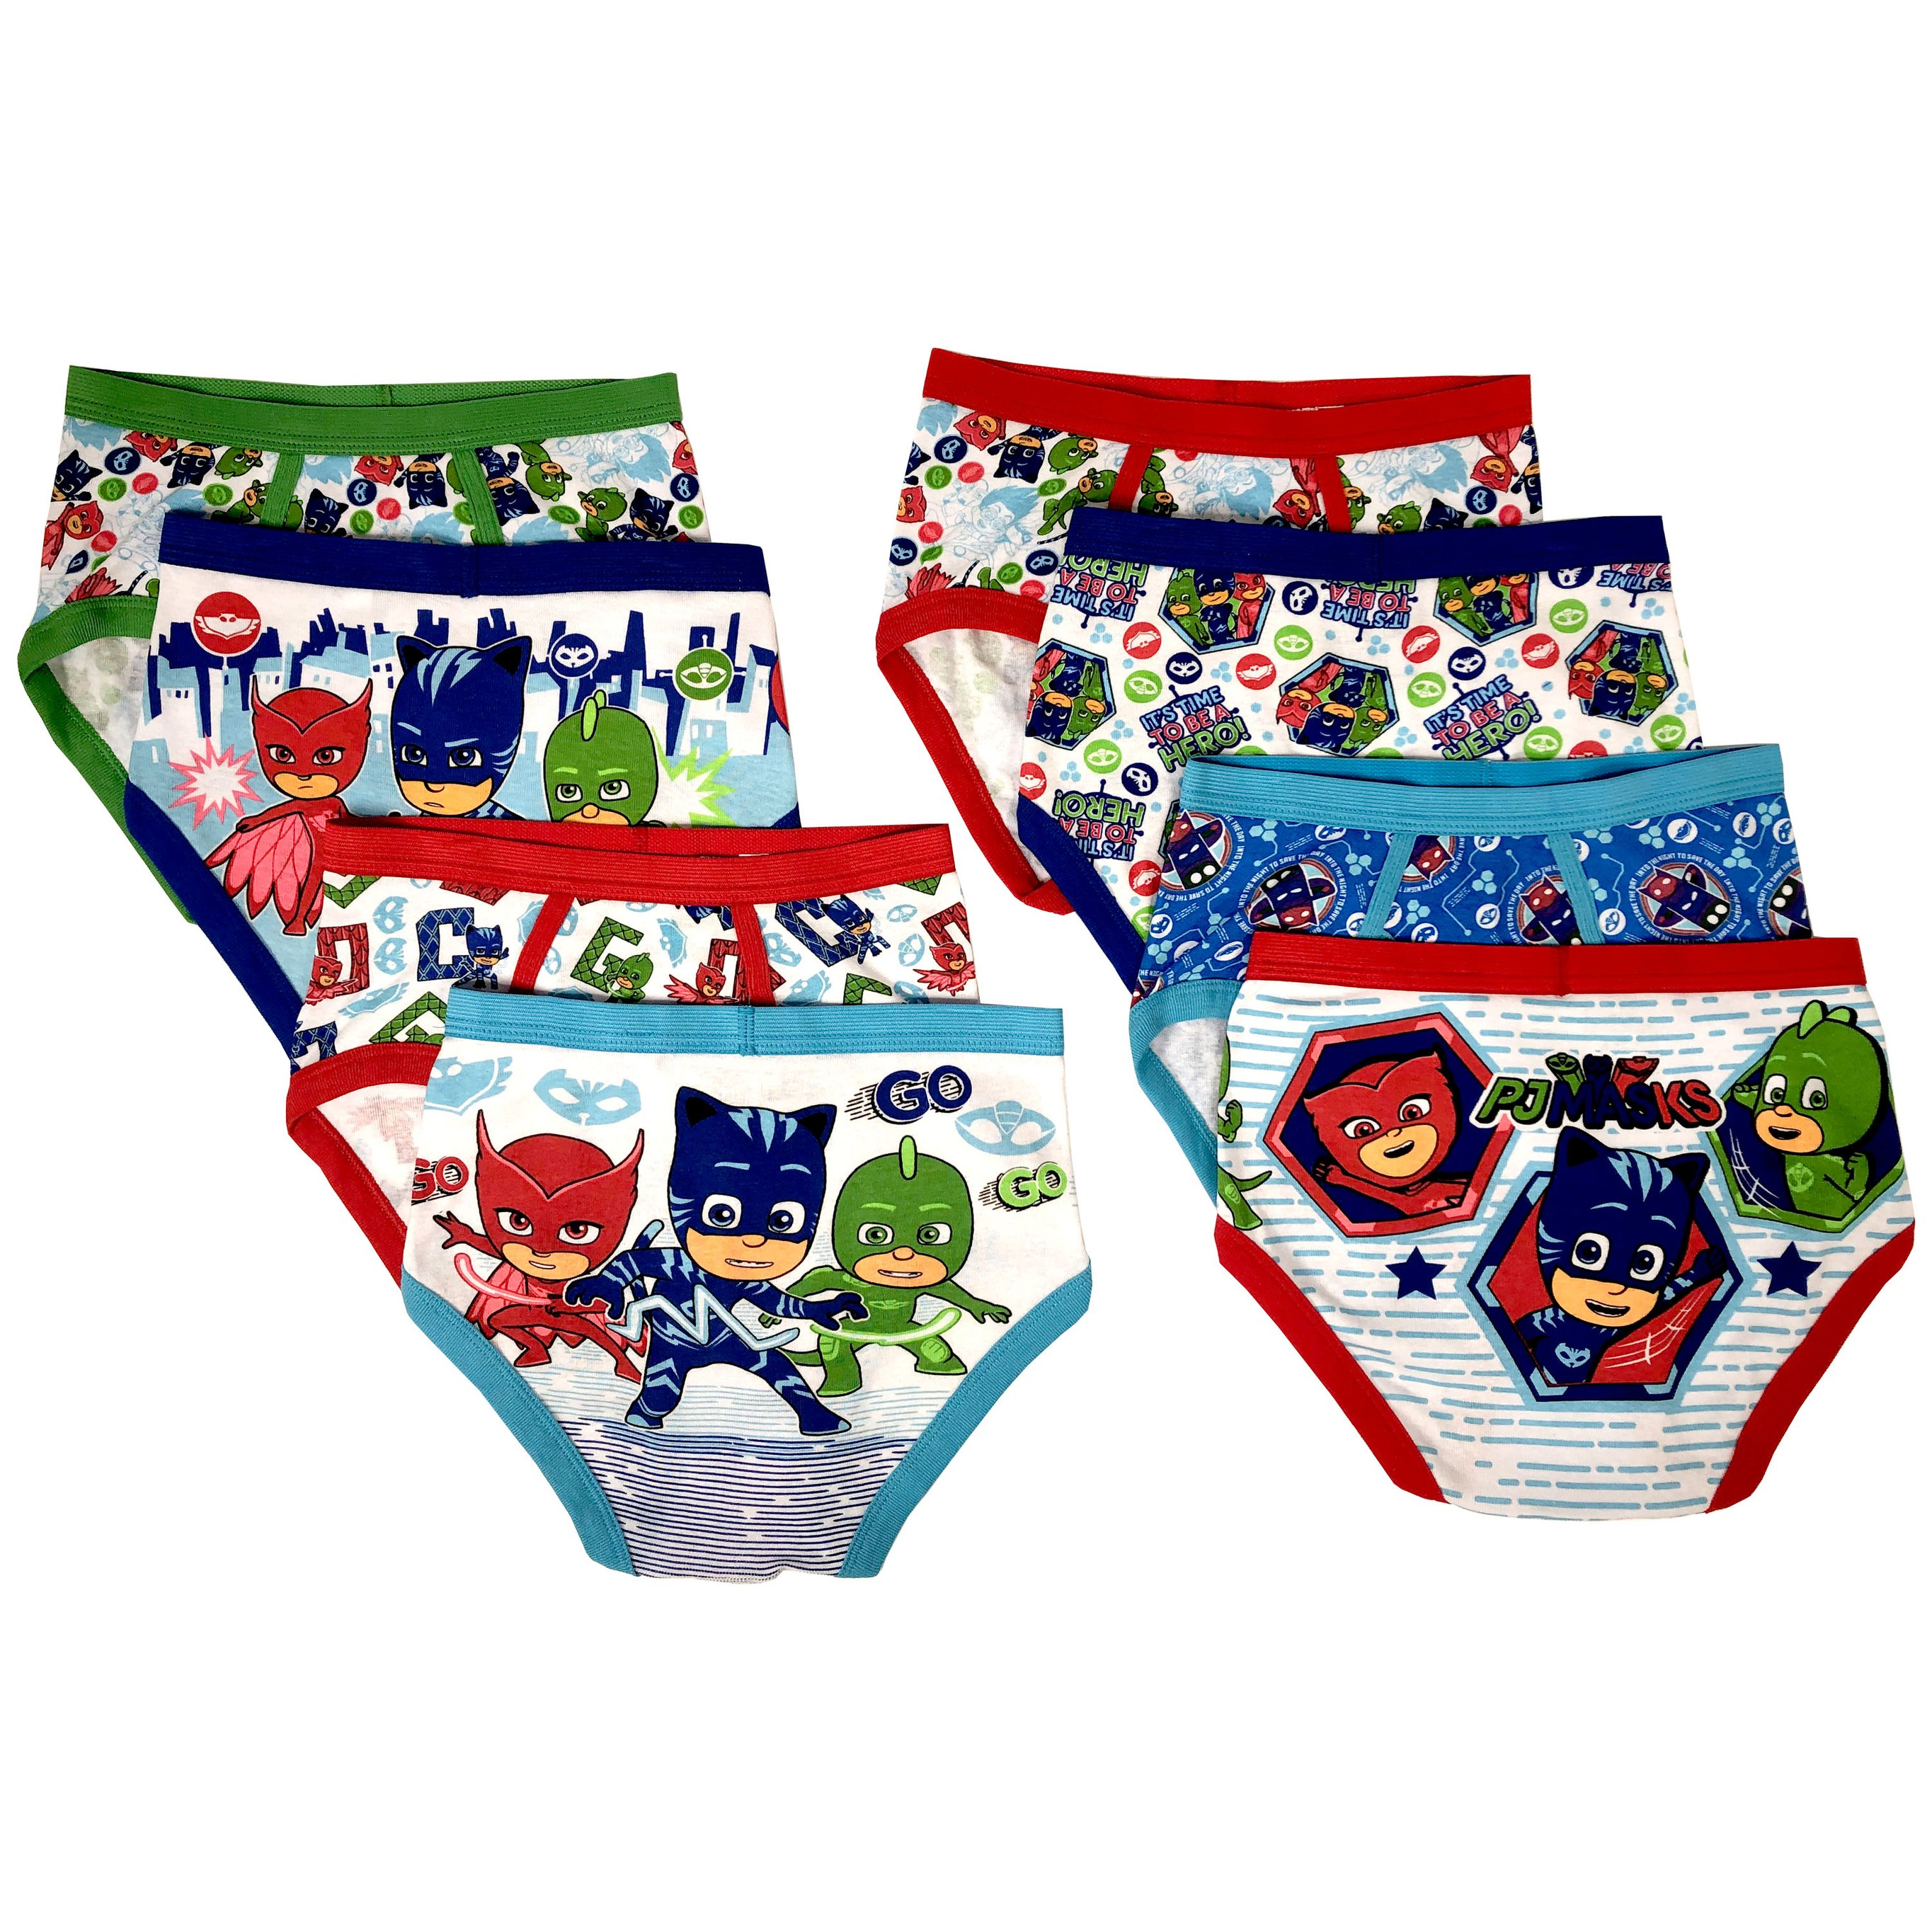 Hot Wheels Boys Briefs 6-Pack Underwear Sizes 2T-8 Toddler to Big Kid